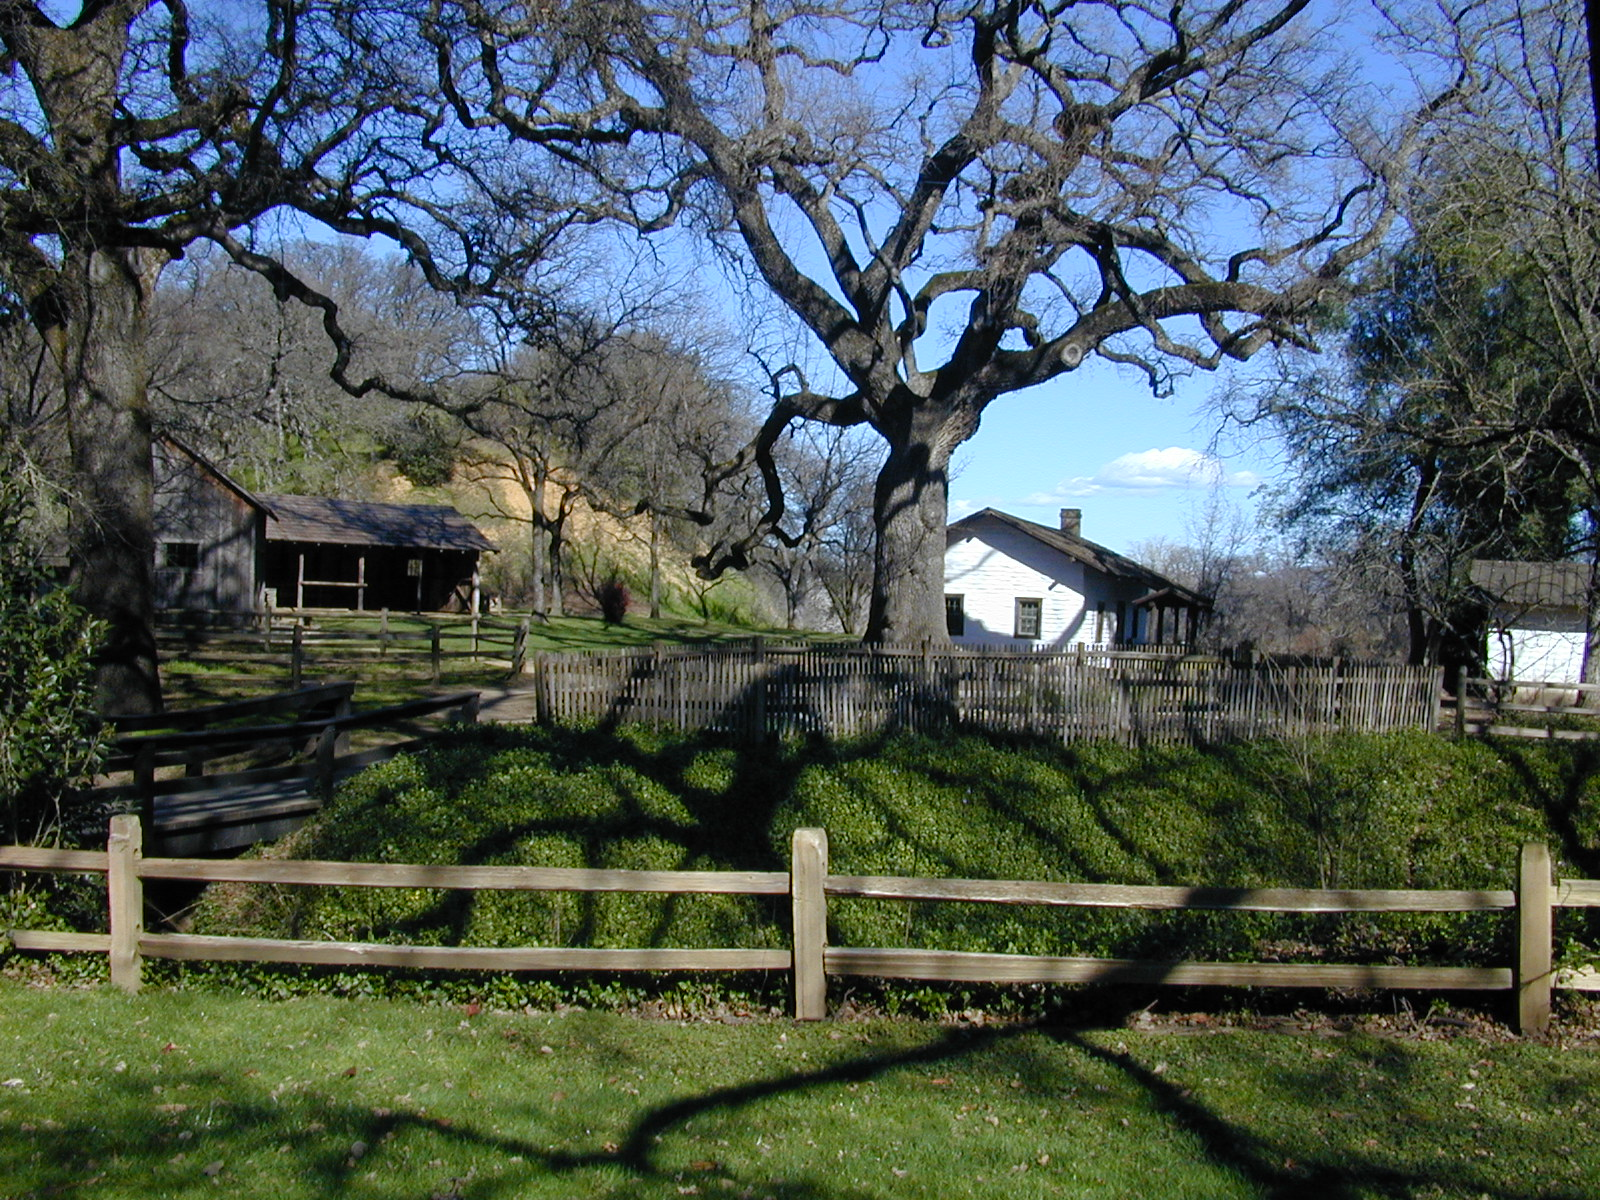 Image from William B. Ide Adobe SHP